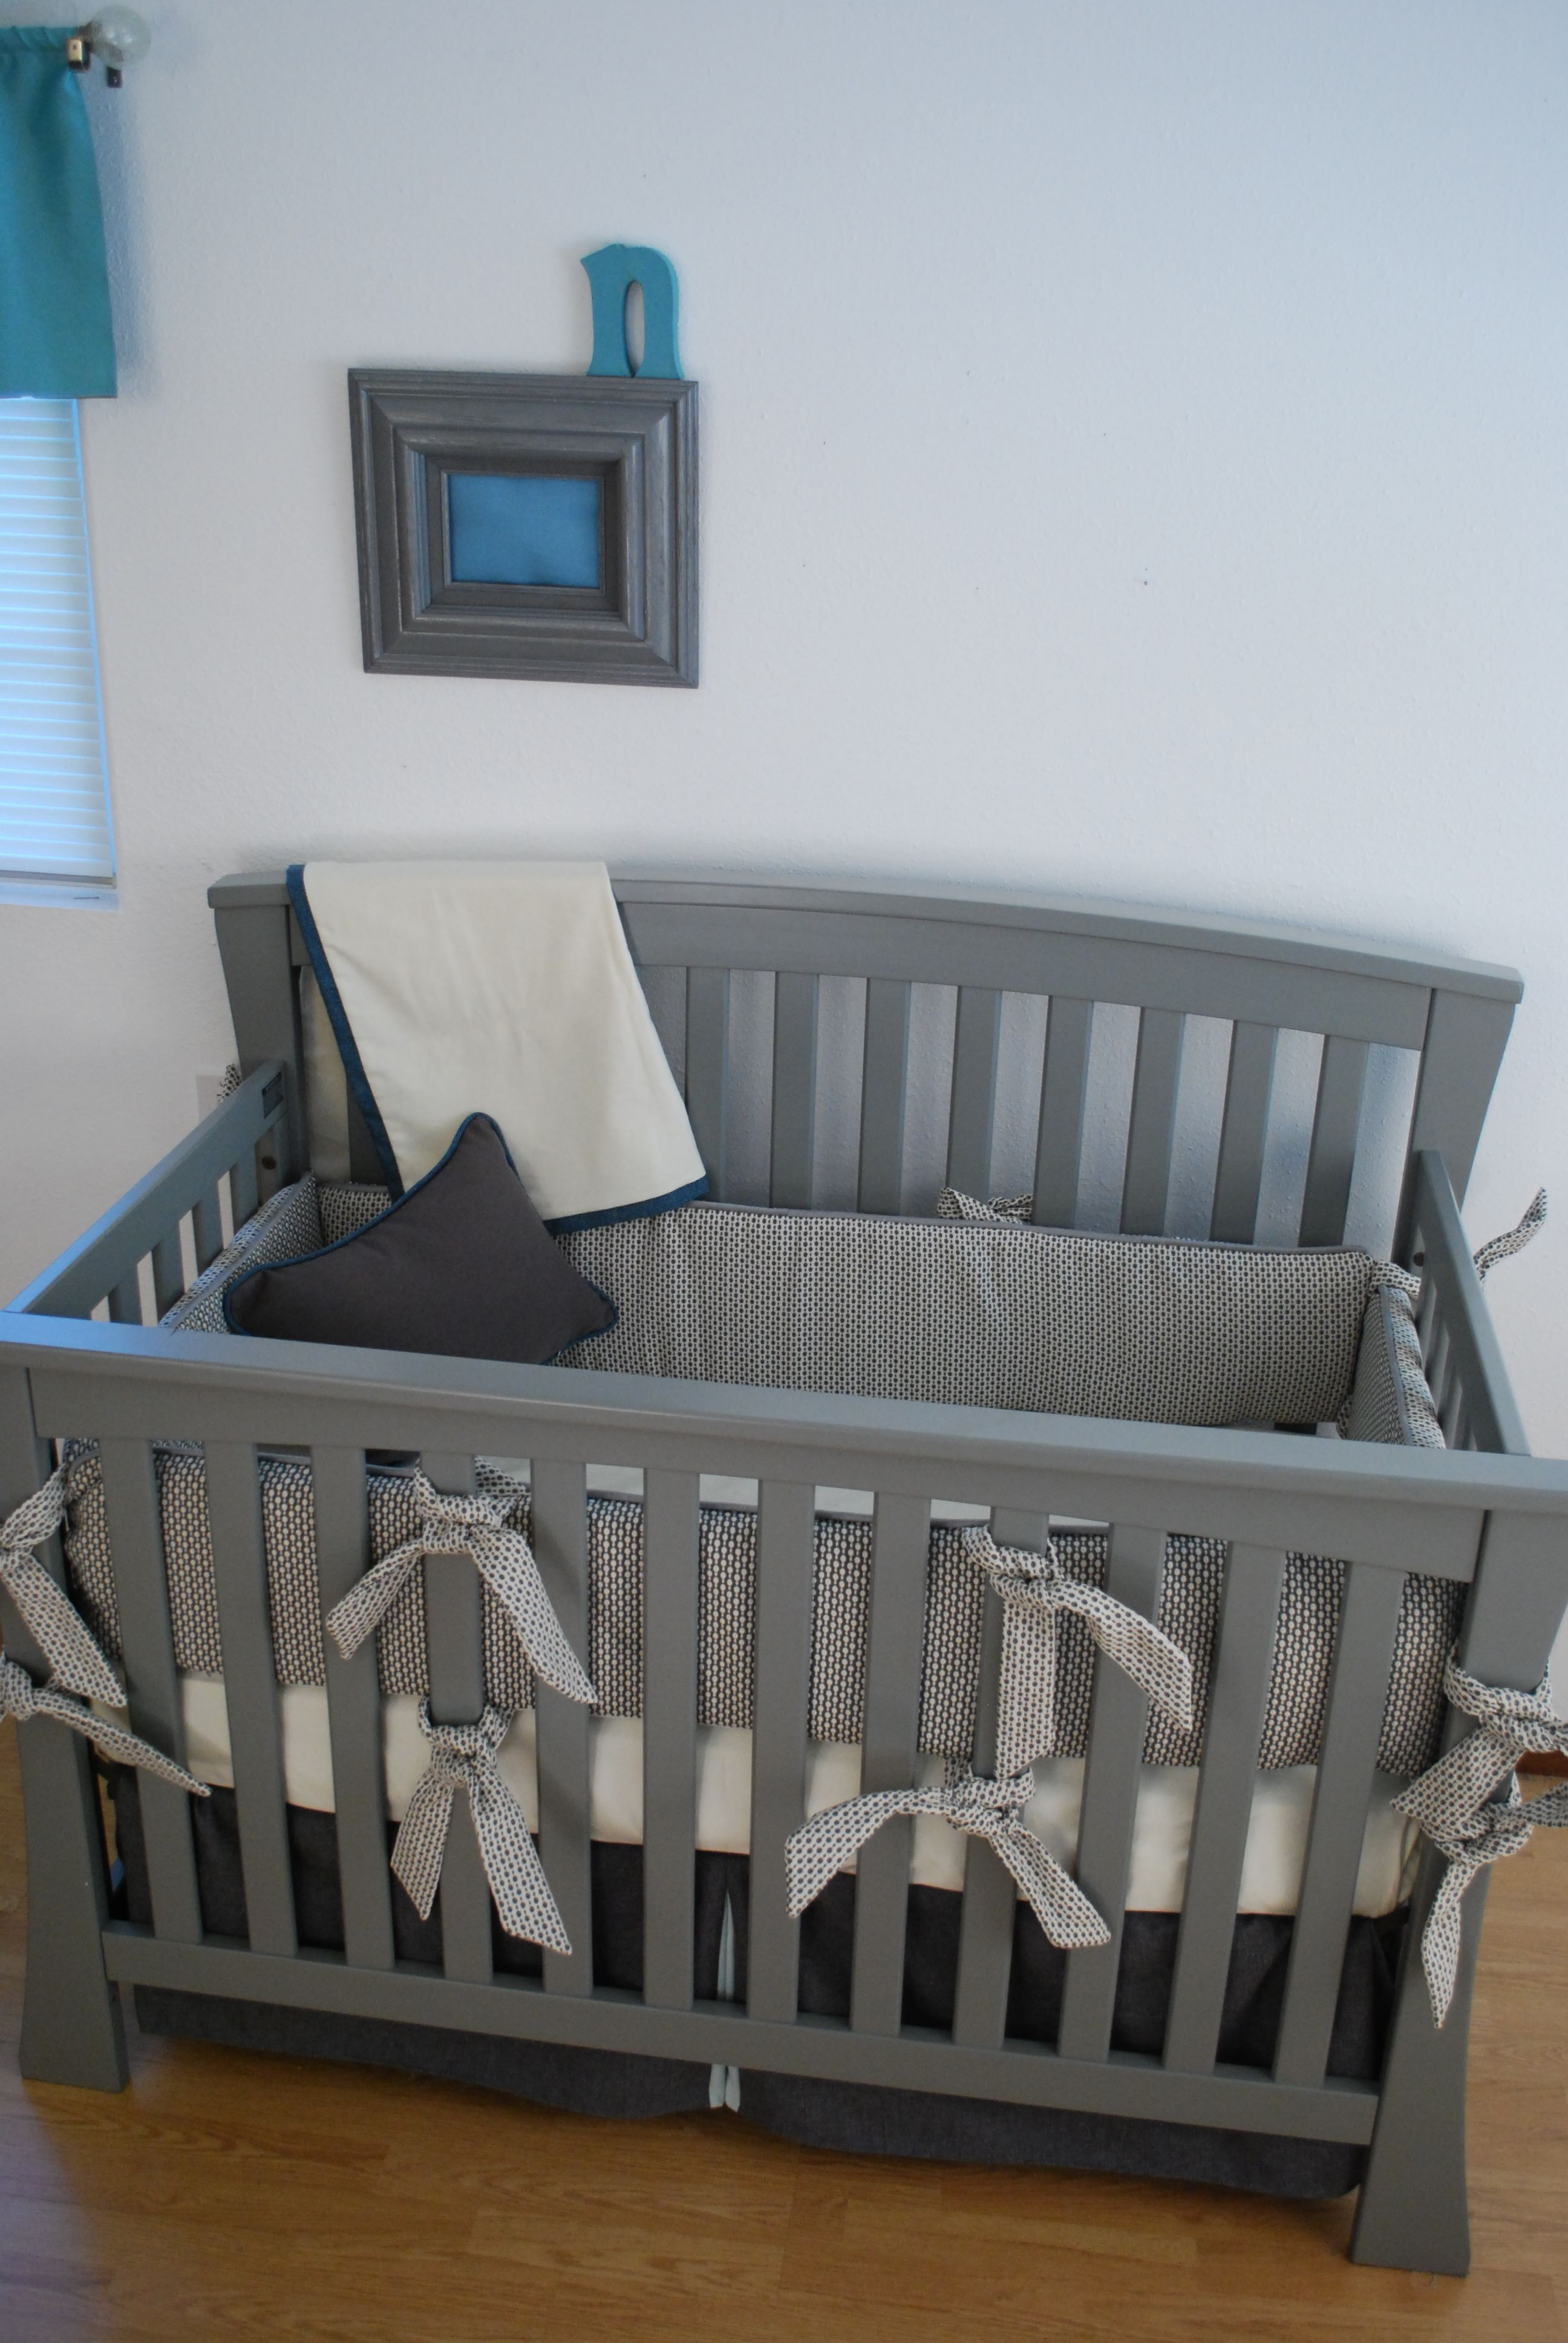 Charcoal Grey Crib Bedding With White And Aqua Fabrics In The Custom Nursery